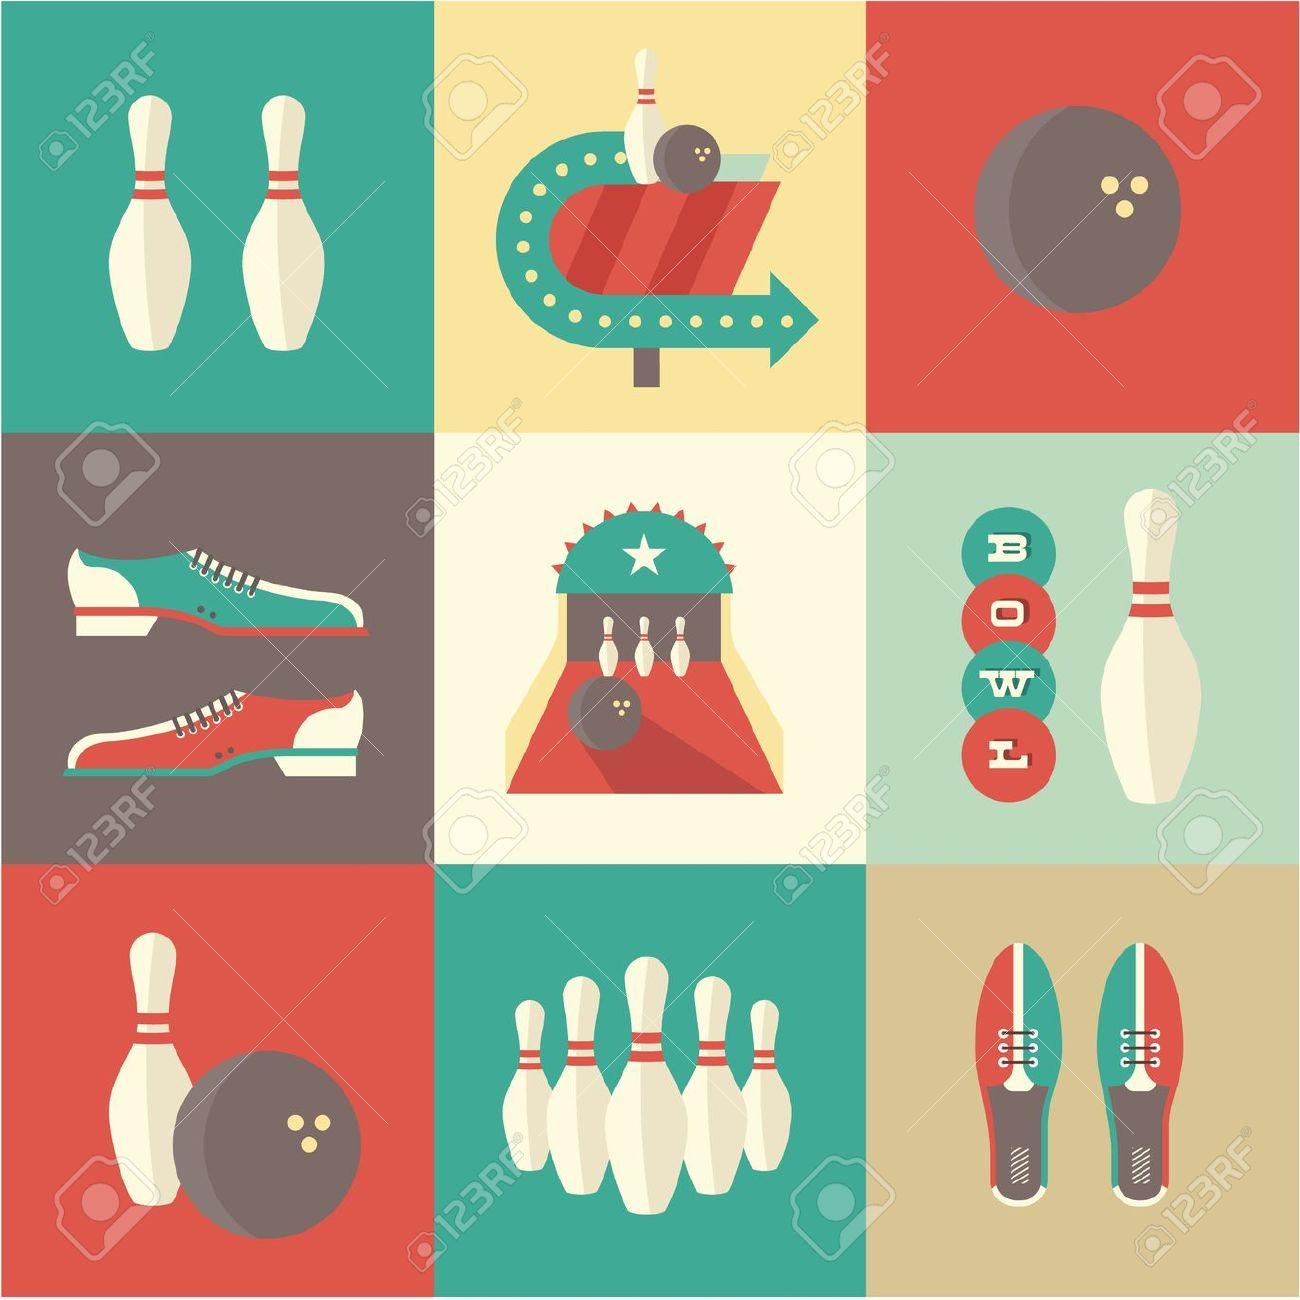 770 Bowling Shoes Cliparts, Stock Vector And Royalty Free Bowling.